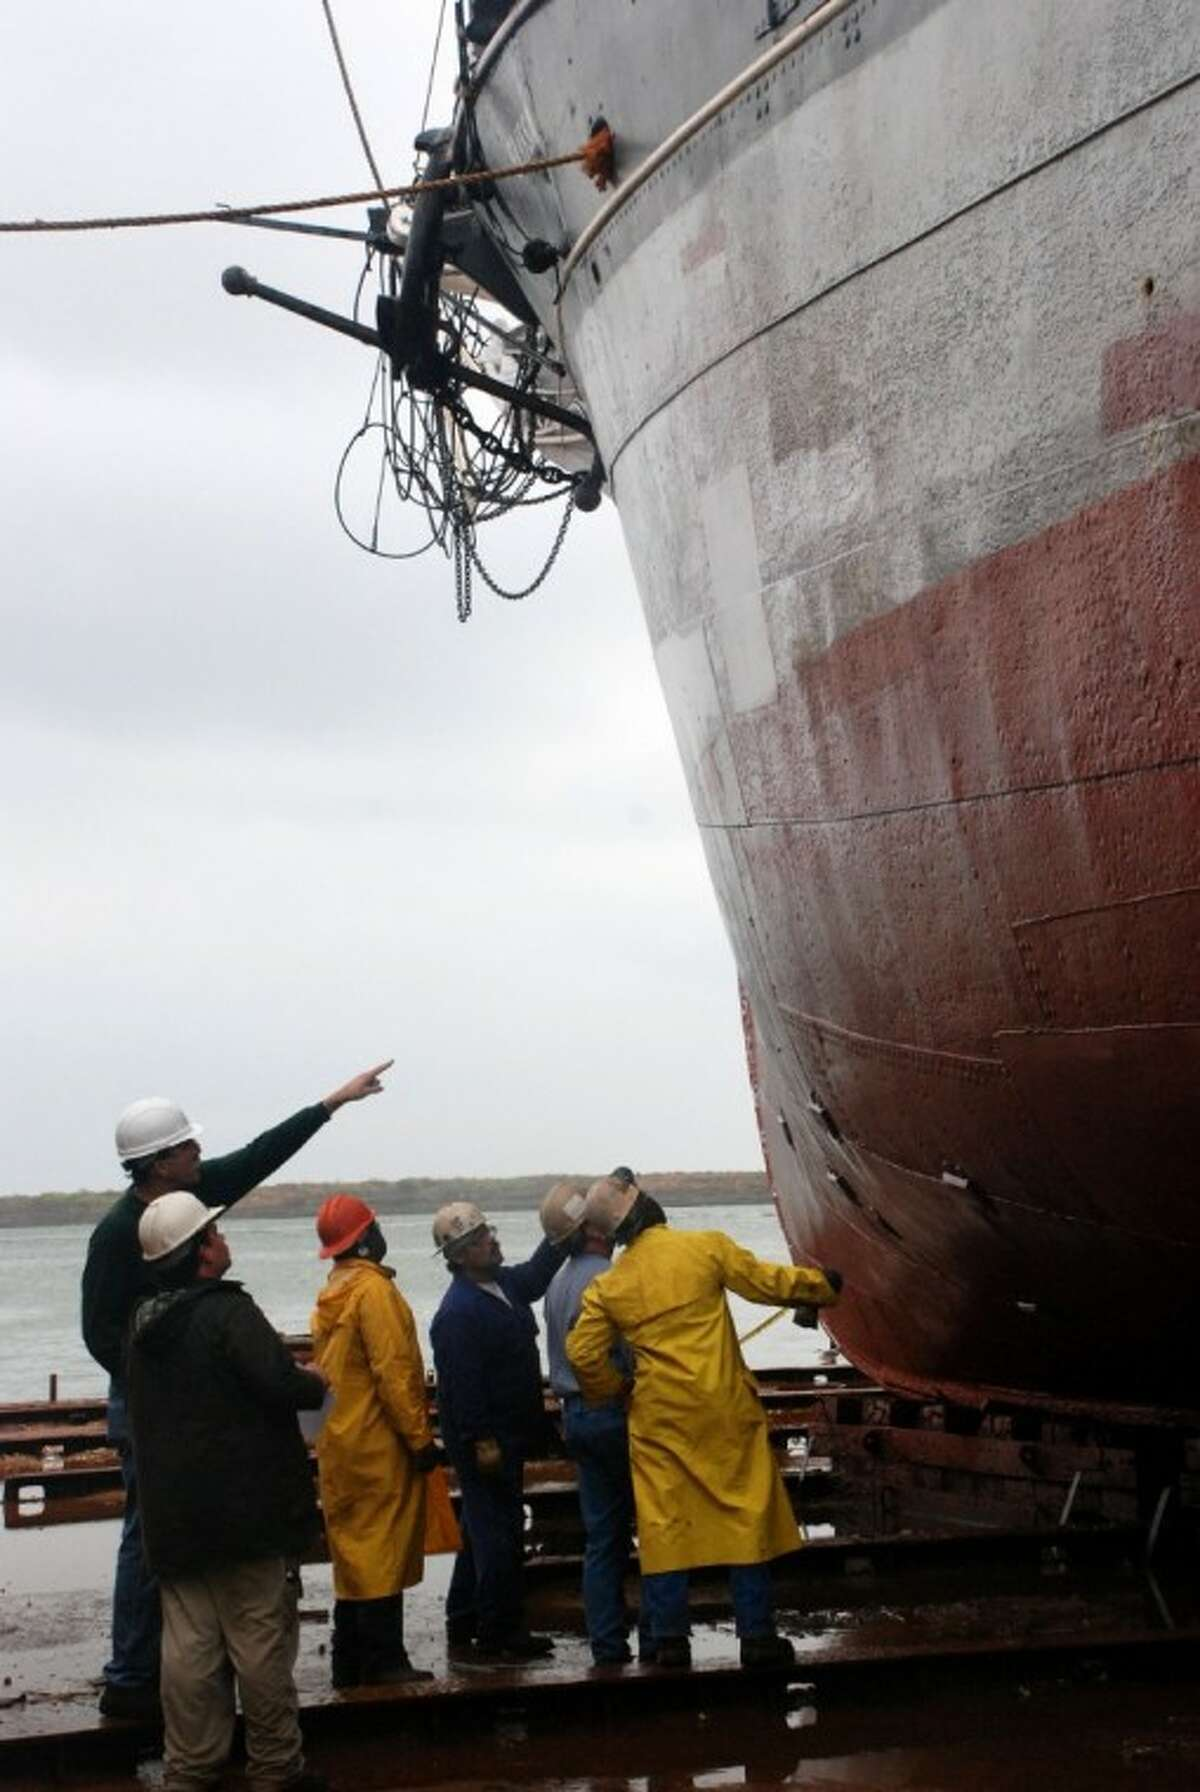 Electrolytic corrosion of Elissa's hull is found during inspection, preventing the ship from carrying passengers until repairs are complete.